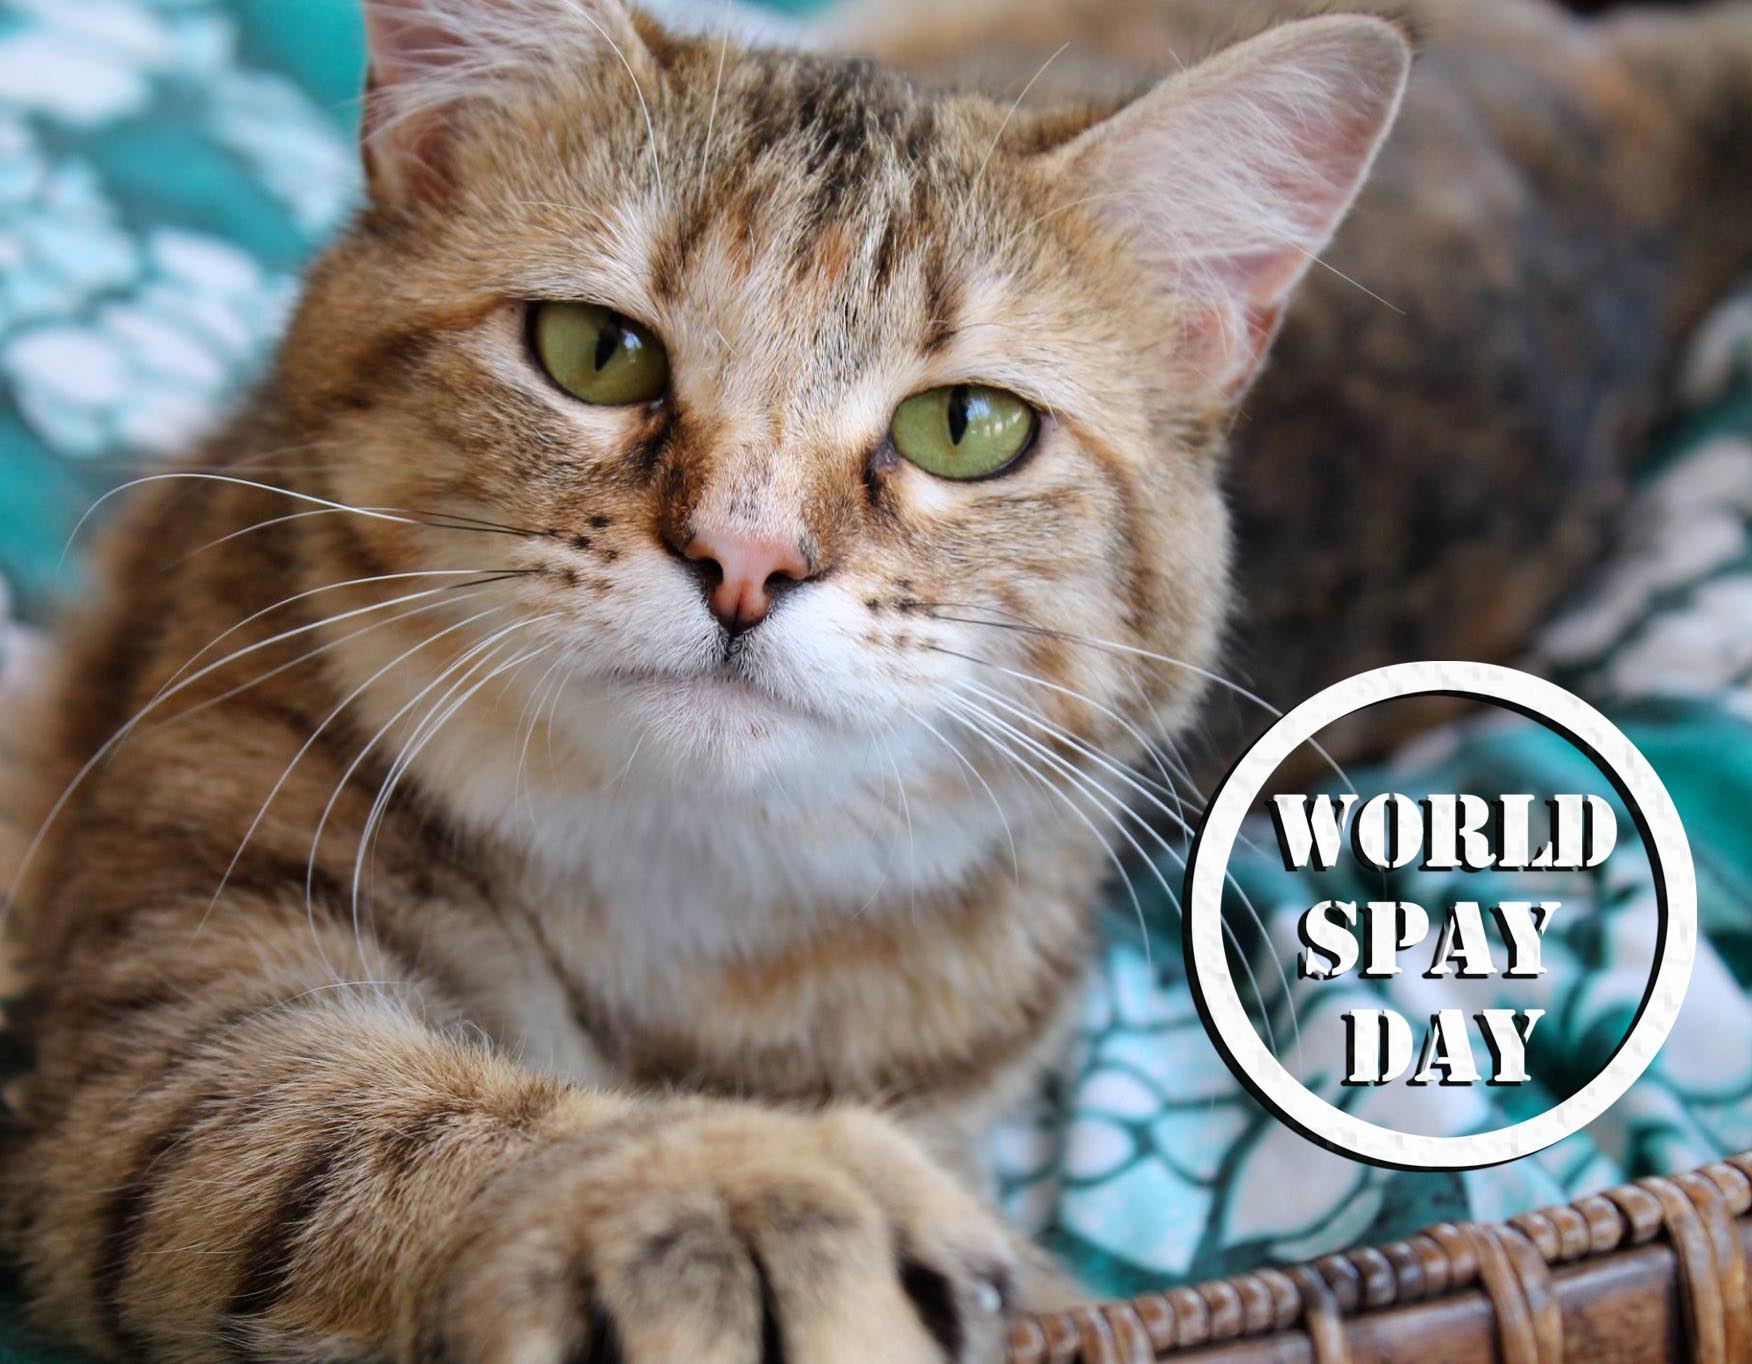 WORLD_SPAY_DAY.jpg